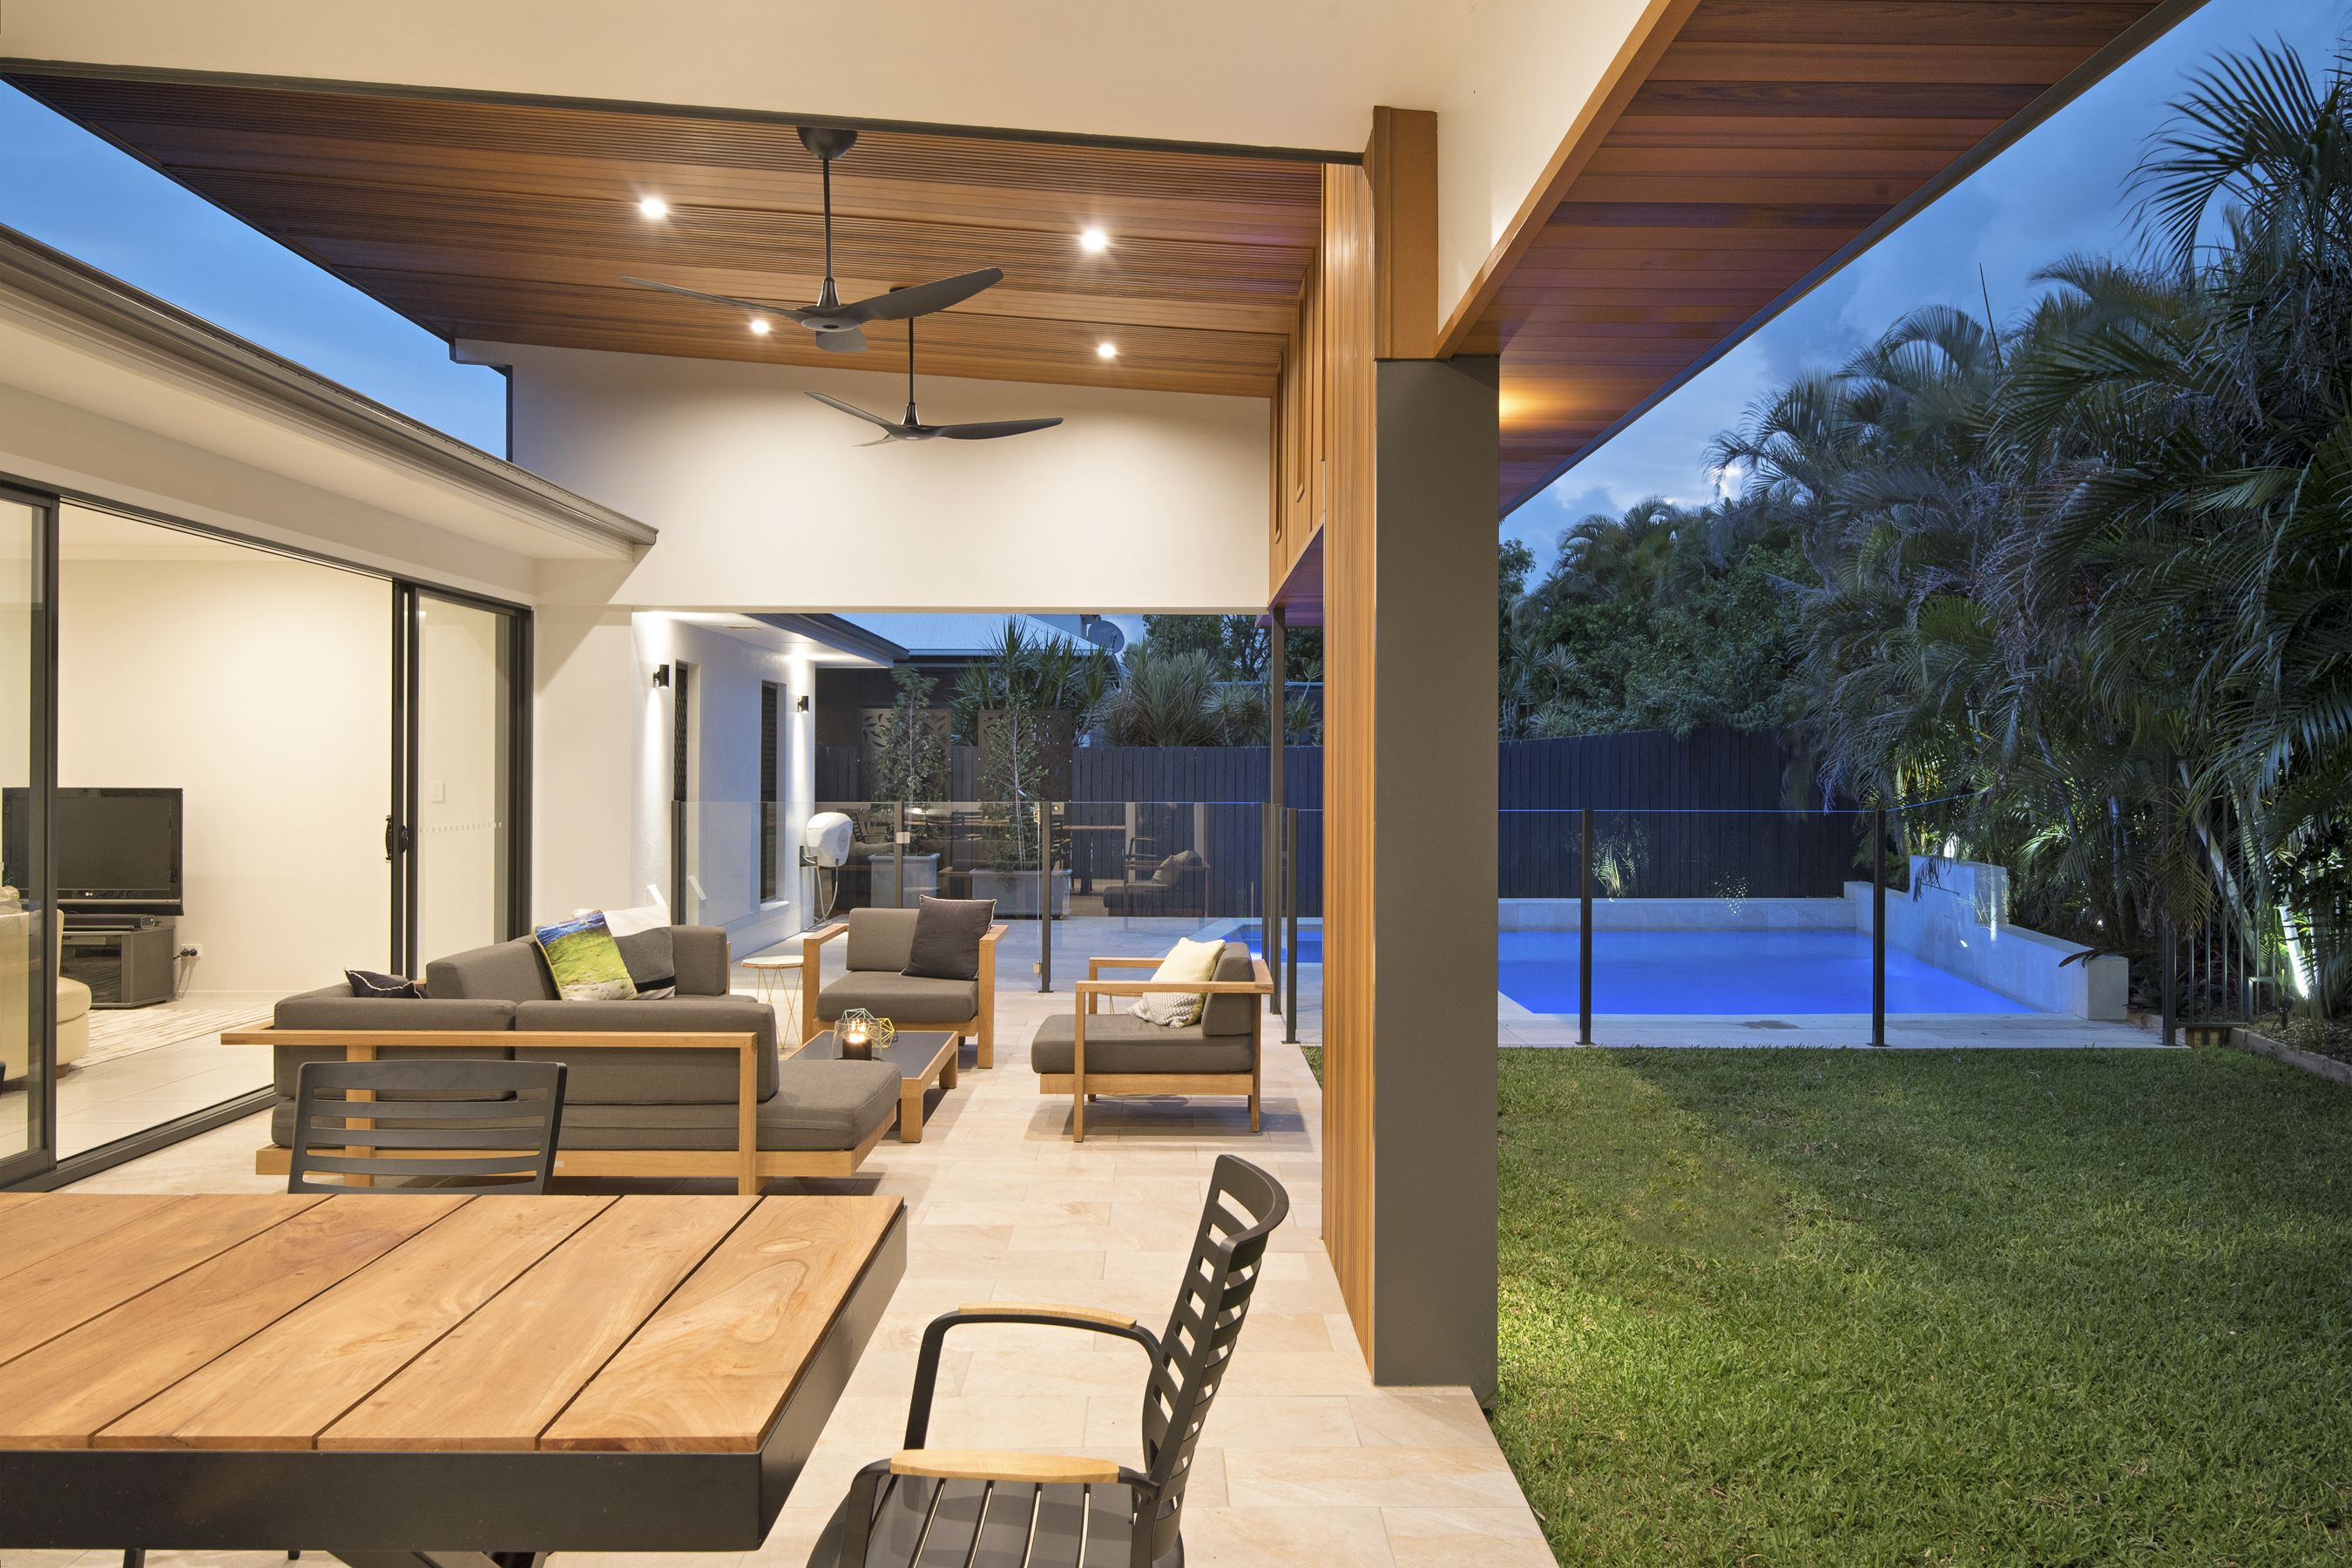 Entertainment Area Design (With images) | Outdoor ... on Small Backyard Entertainment Area Ideas id=34357